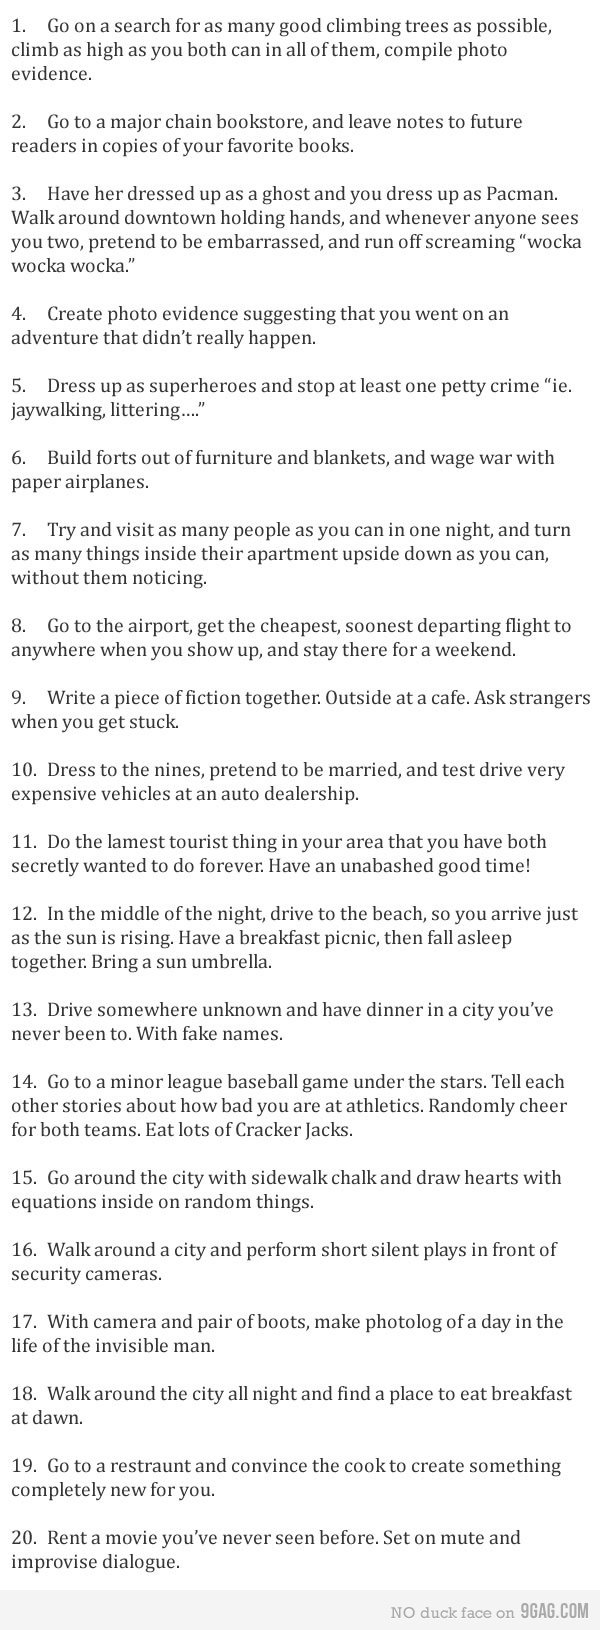 10 Unique Good Date Ideas For Guys fun and unusual date ideas perfect guy fun things and guy 2020